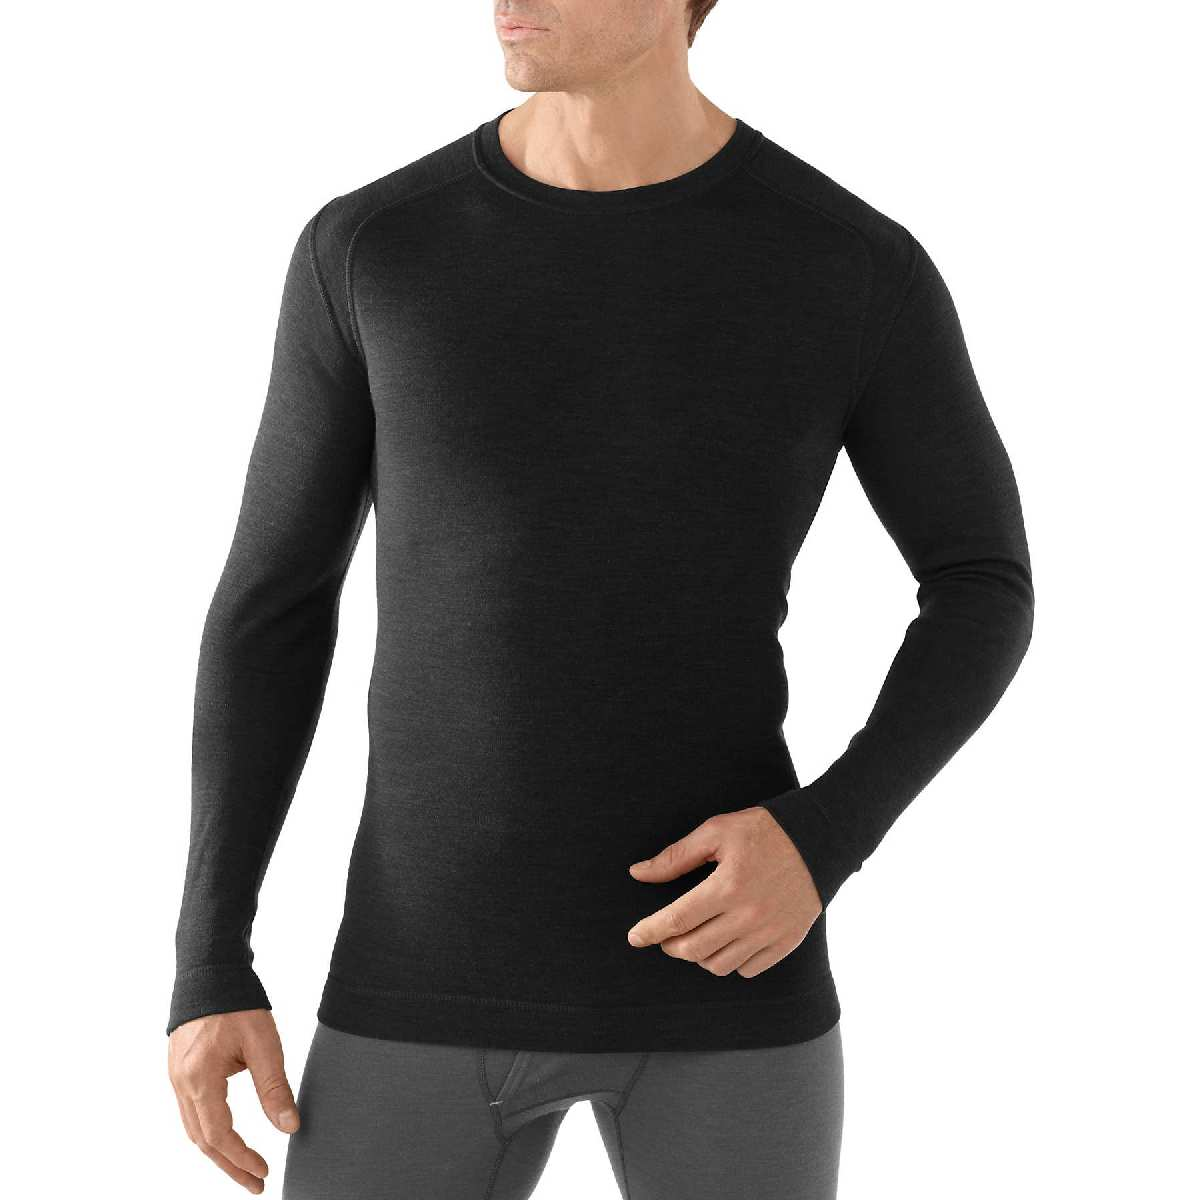 SmartWool NTS Mid 250 Crew Long Sleeve Base Layer Men's Size M Black U.S.A. & Canada